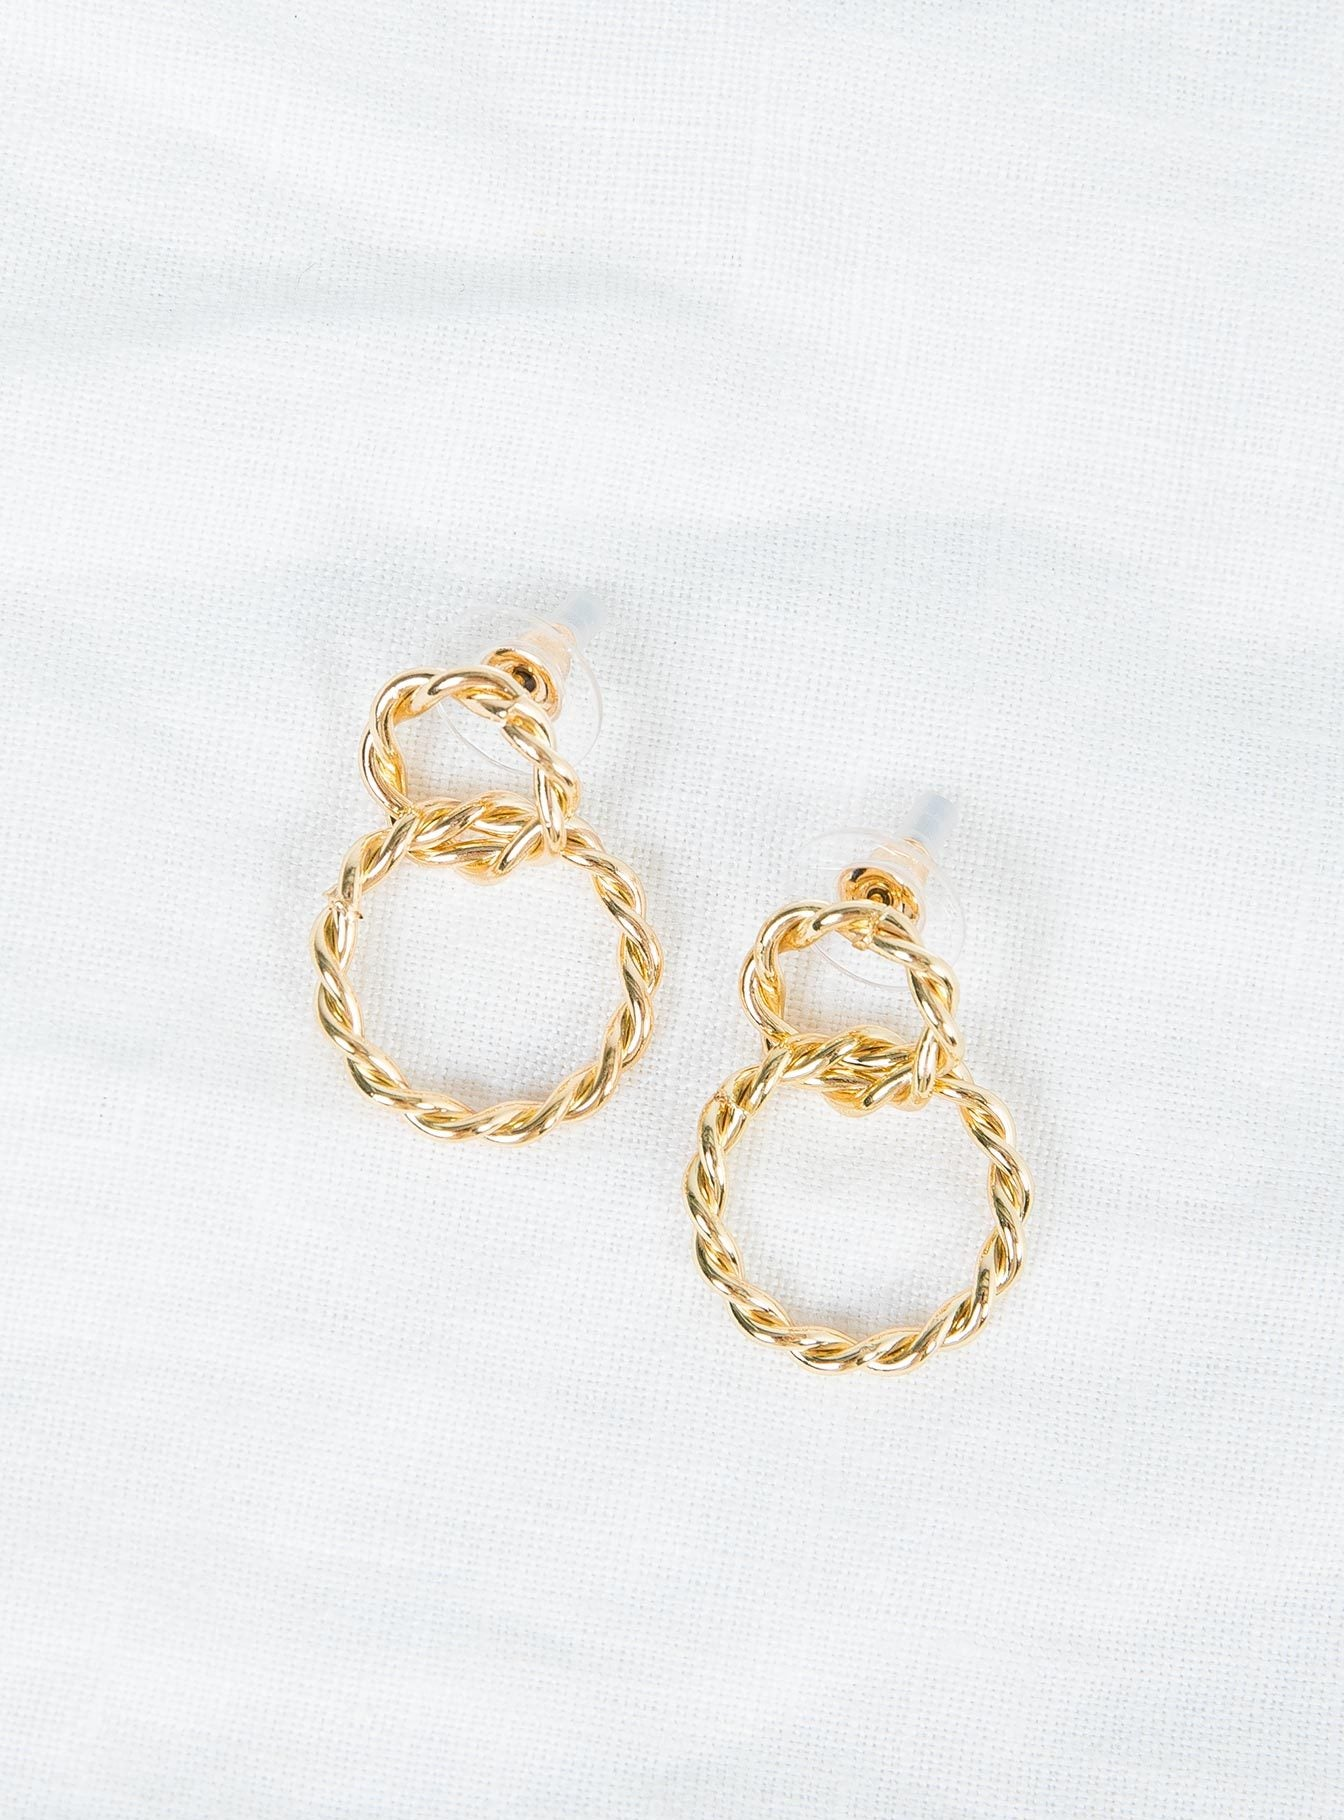 Freya Earrings